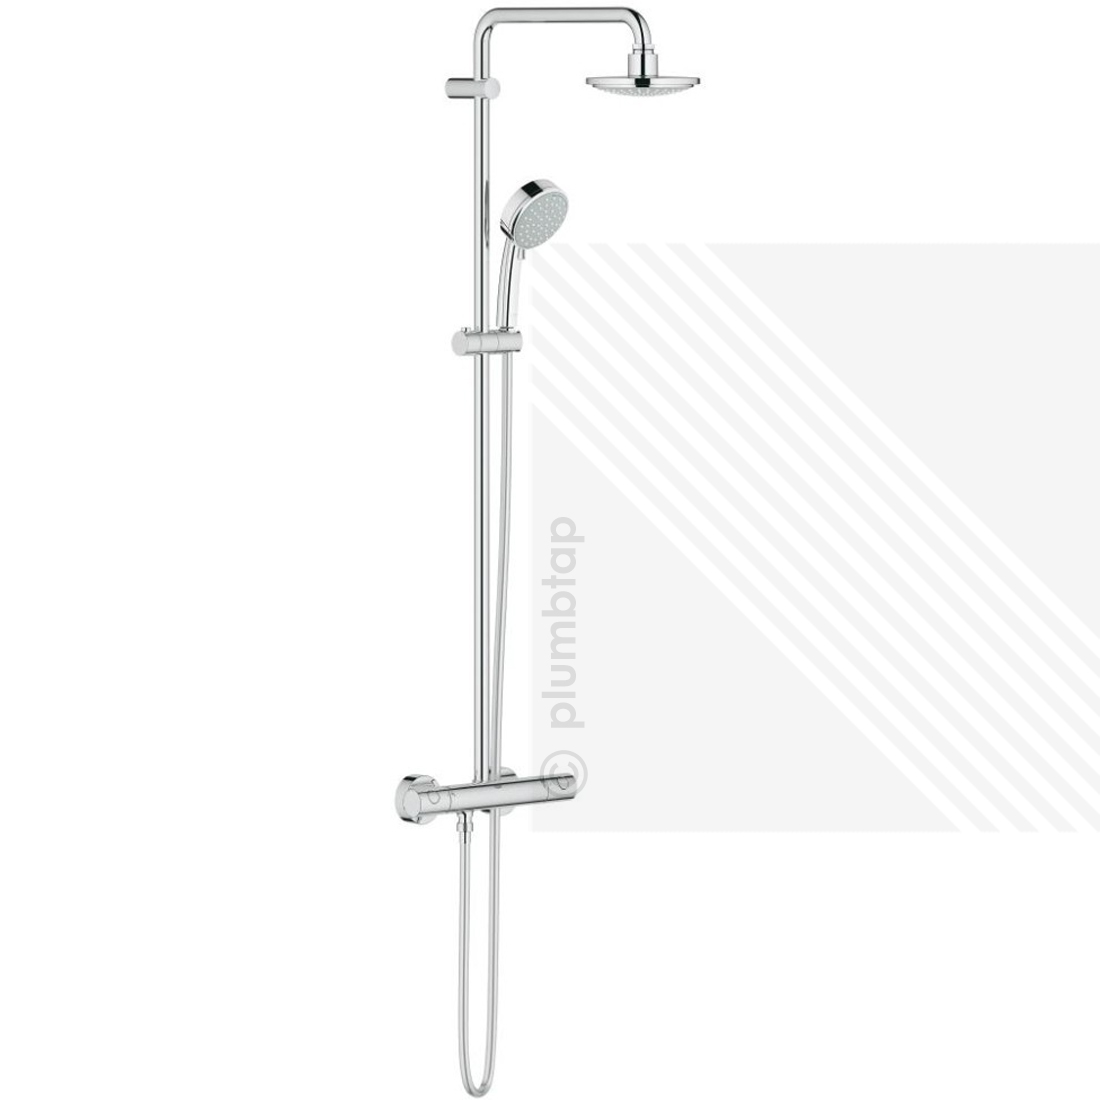 Triton Dove Sequential Exposed Thermostatic Shower Mixer Valve with ...